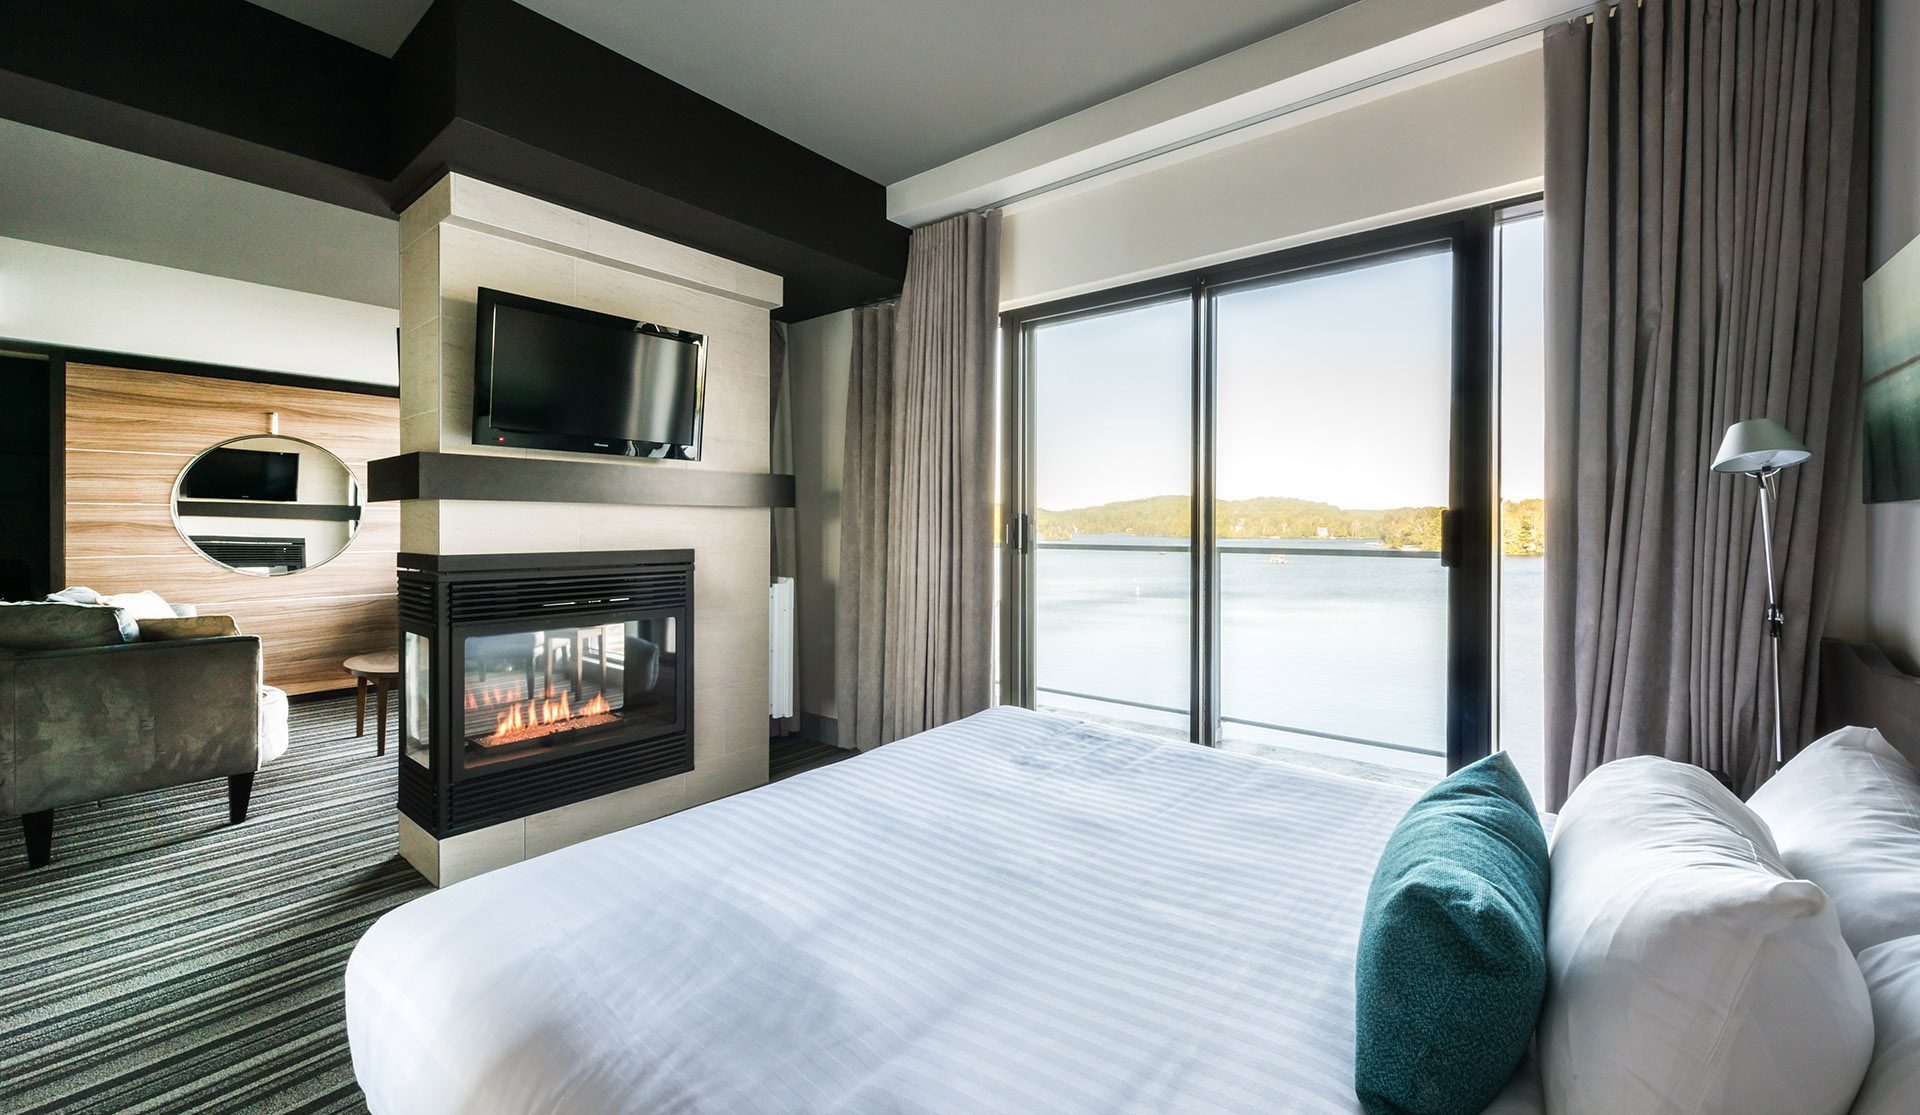 Suite Volution Vue Sur Le Lac Htel Estrel Resort